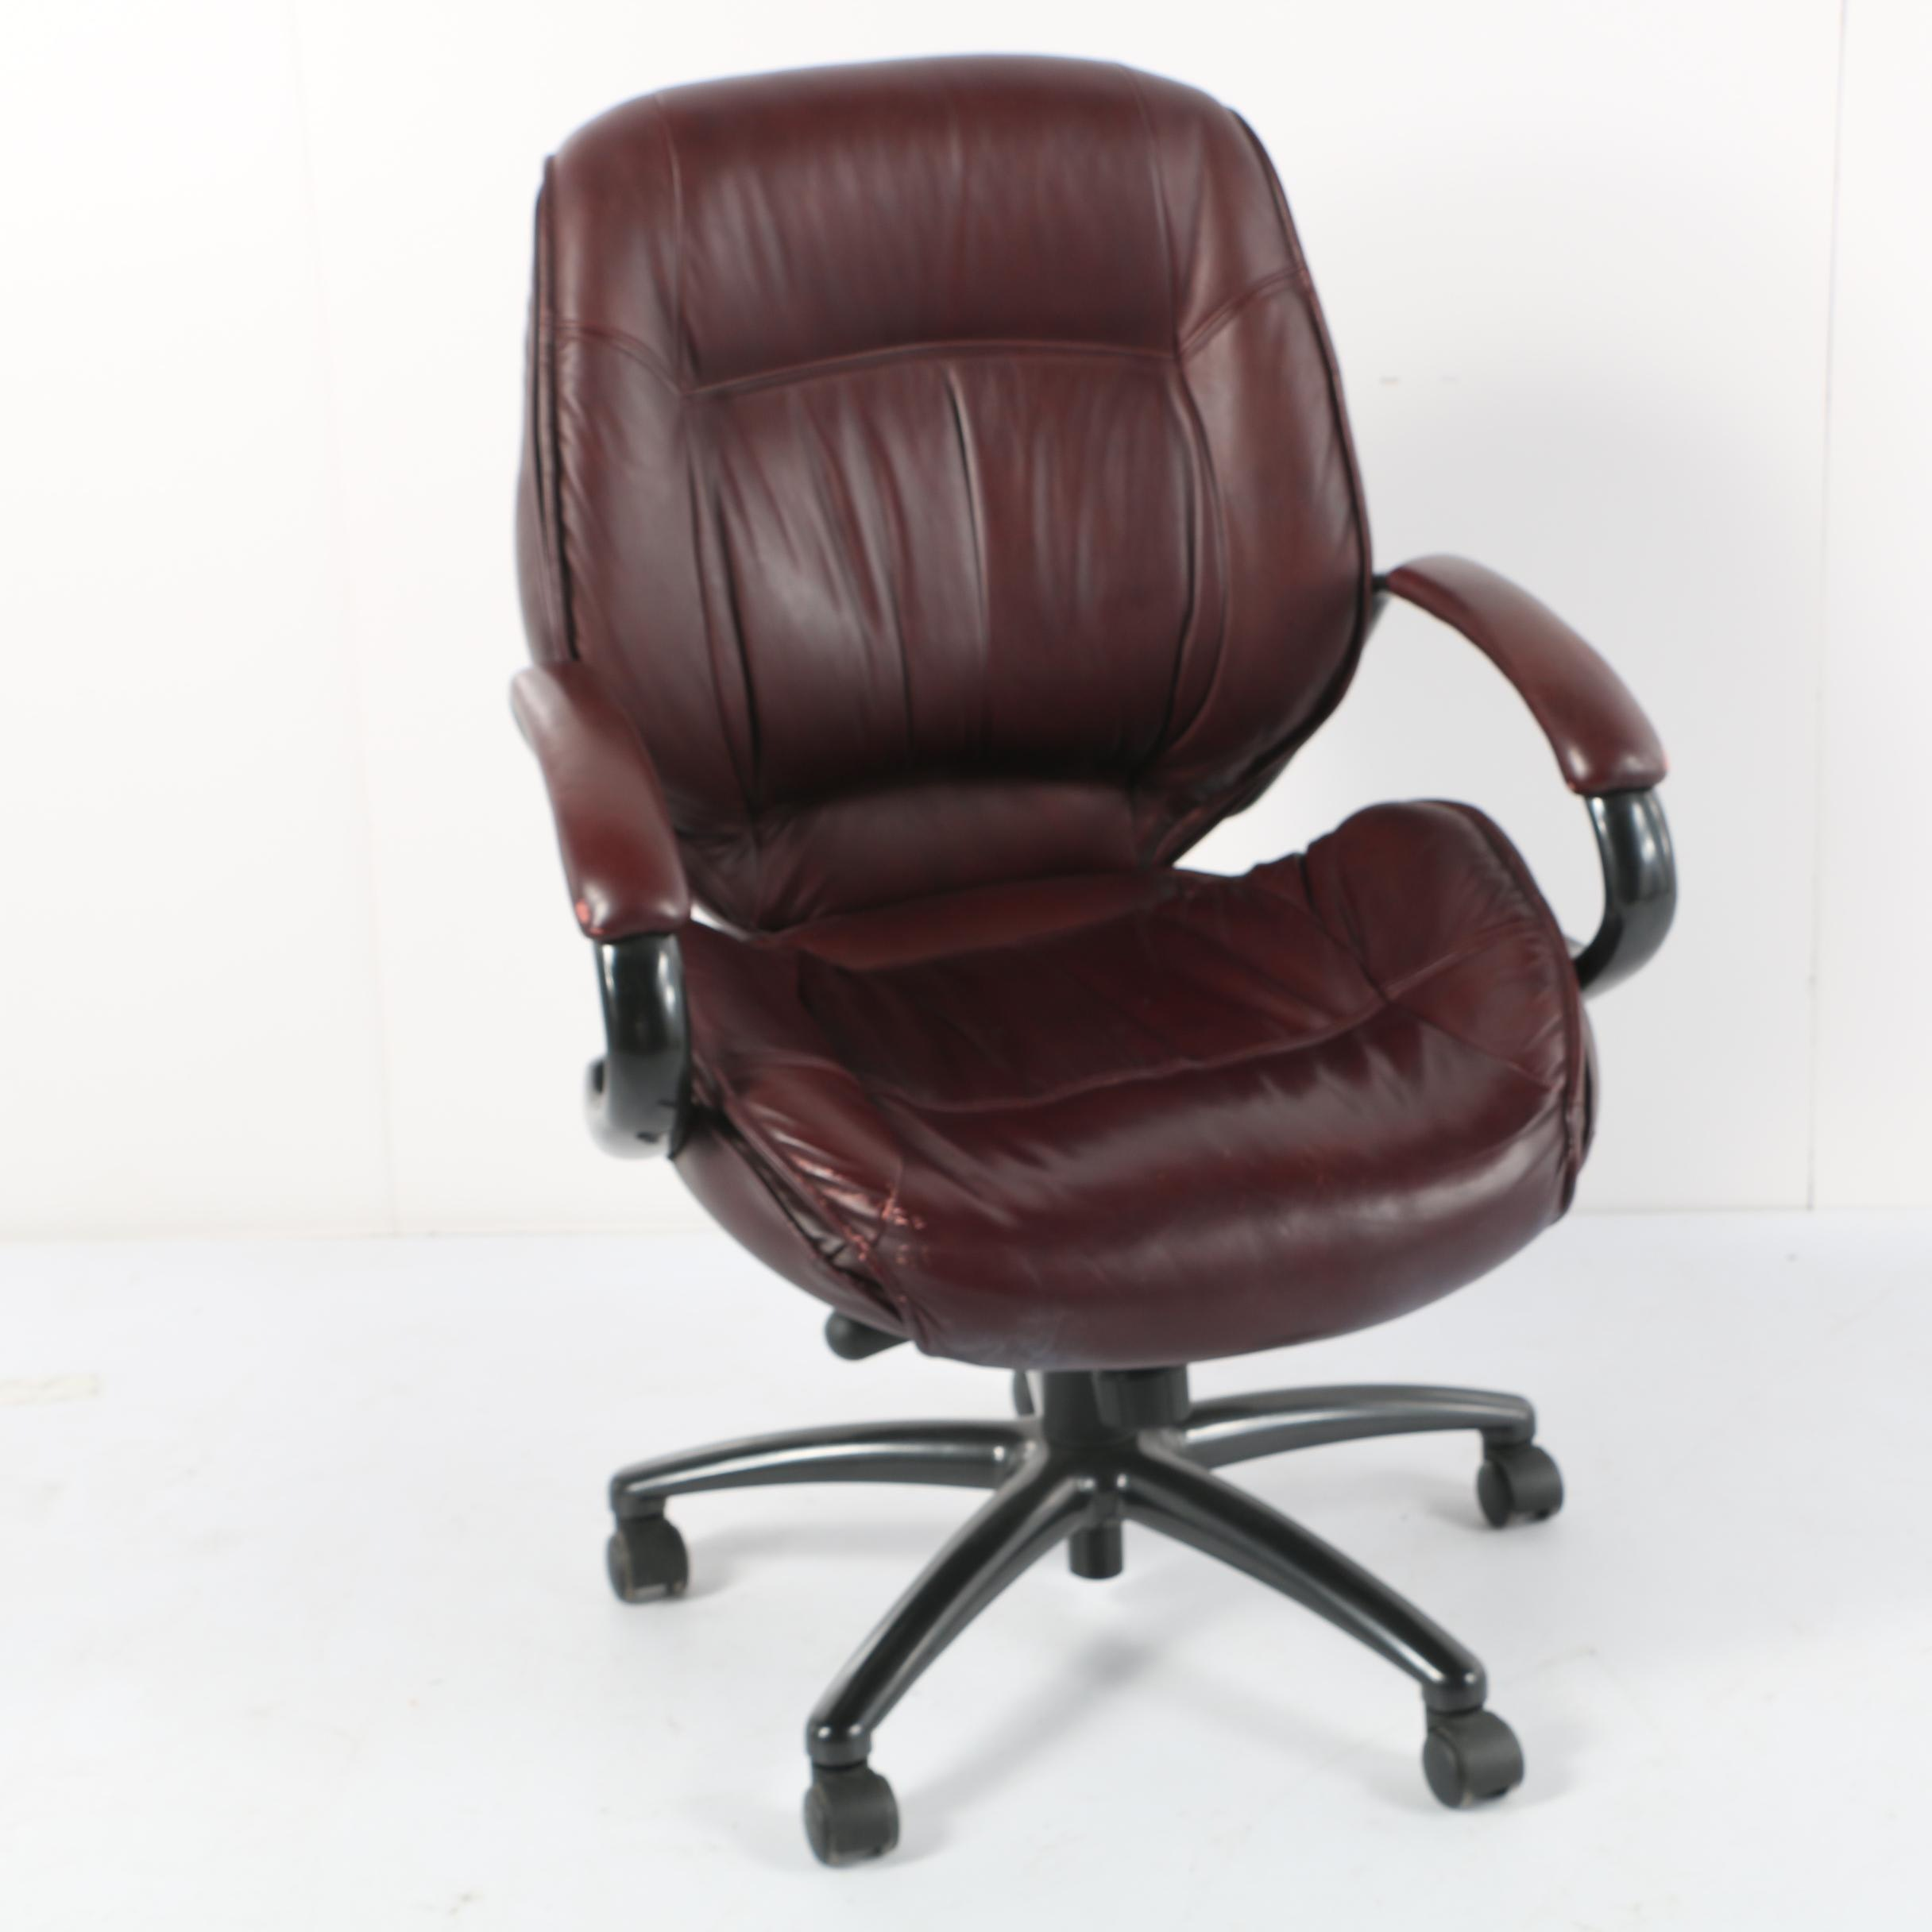 Burgundy Leather Executive Desk Chair by Lane